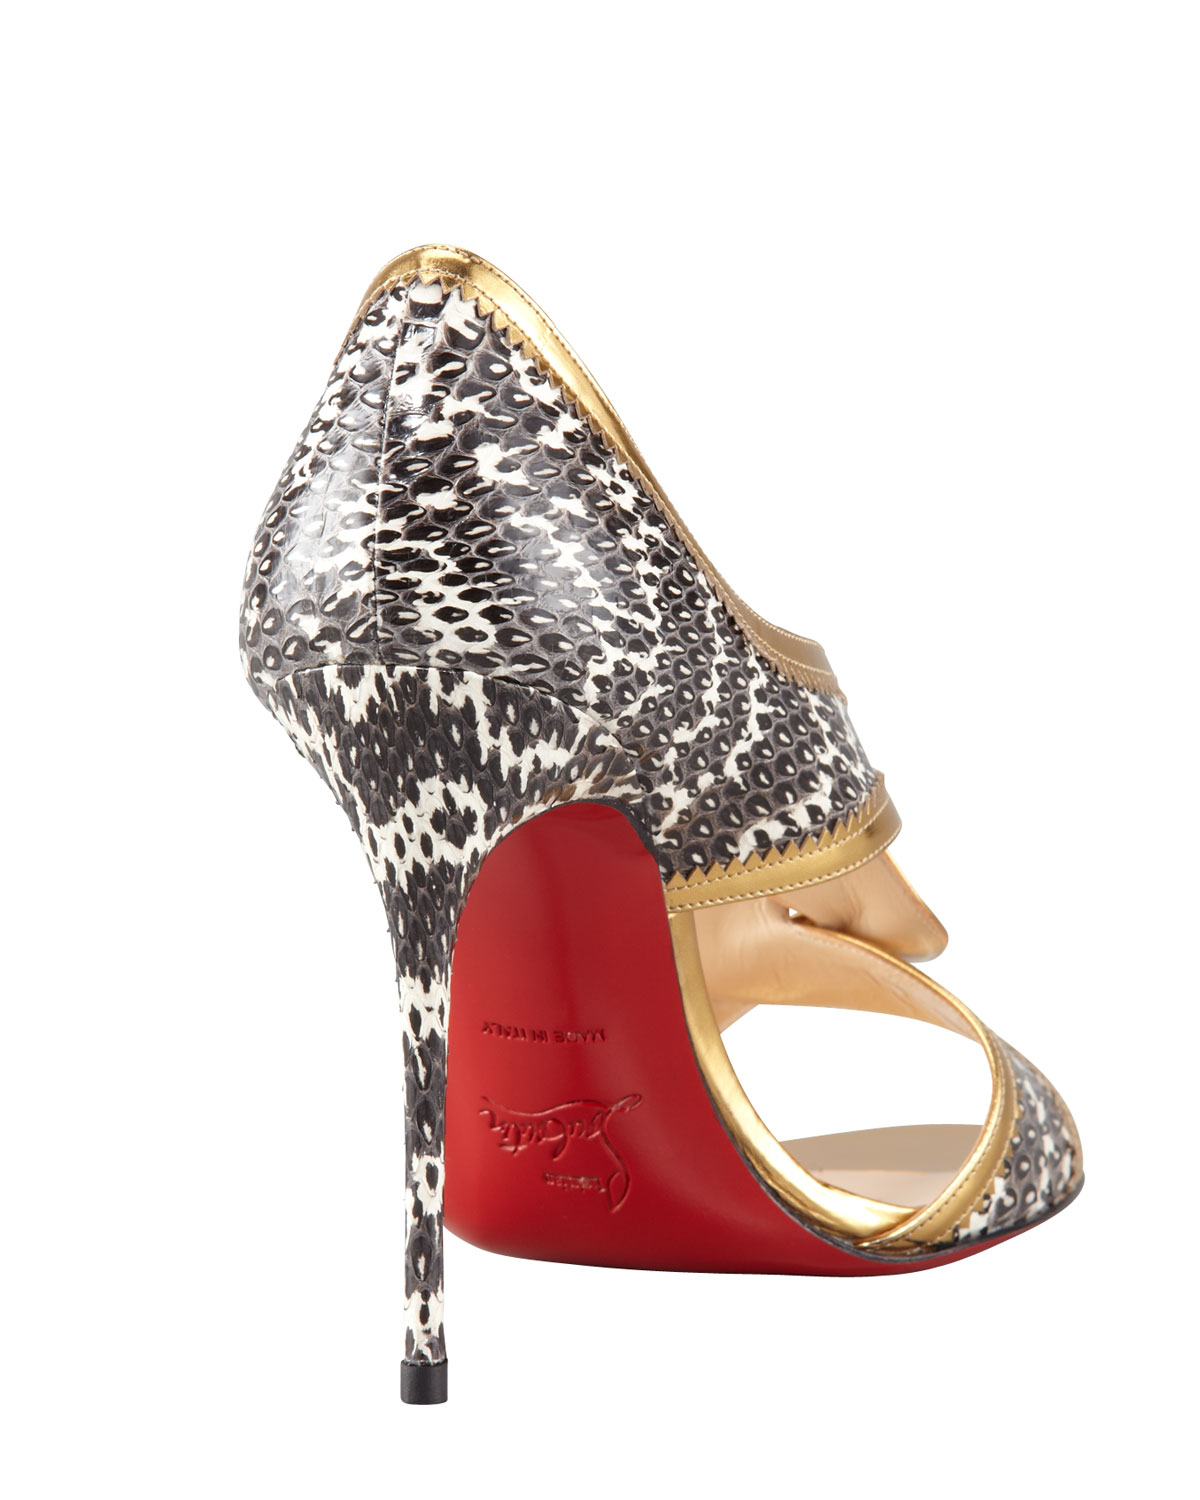 b672eada4281 ... authentic lyst christian louboutin suzanna snake red sole sandal in  metallic e98f6 4b3a7